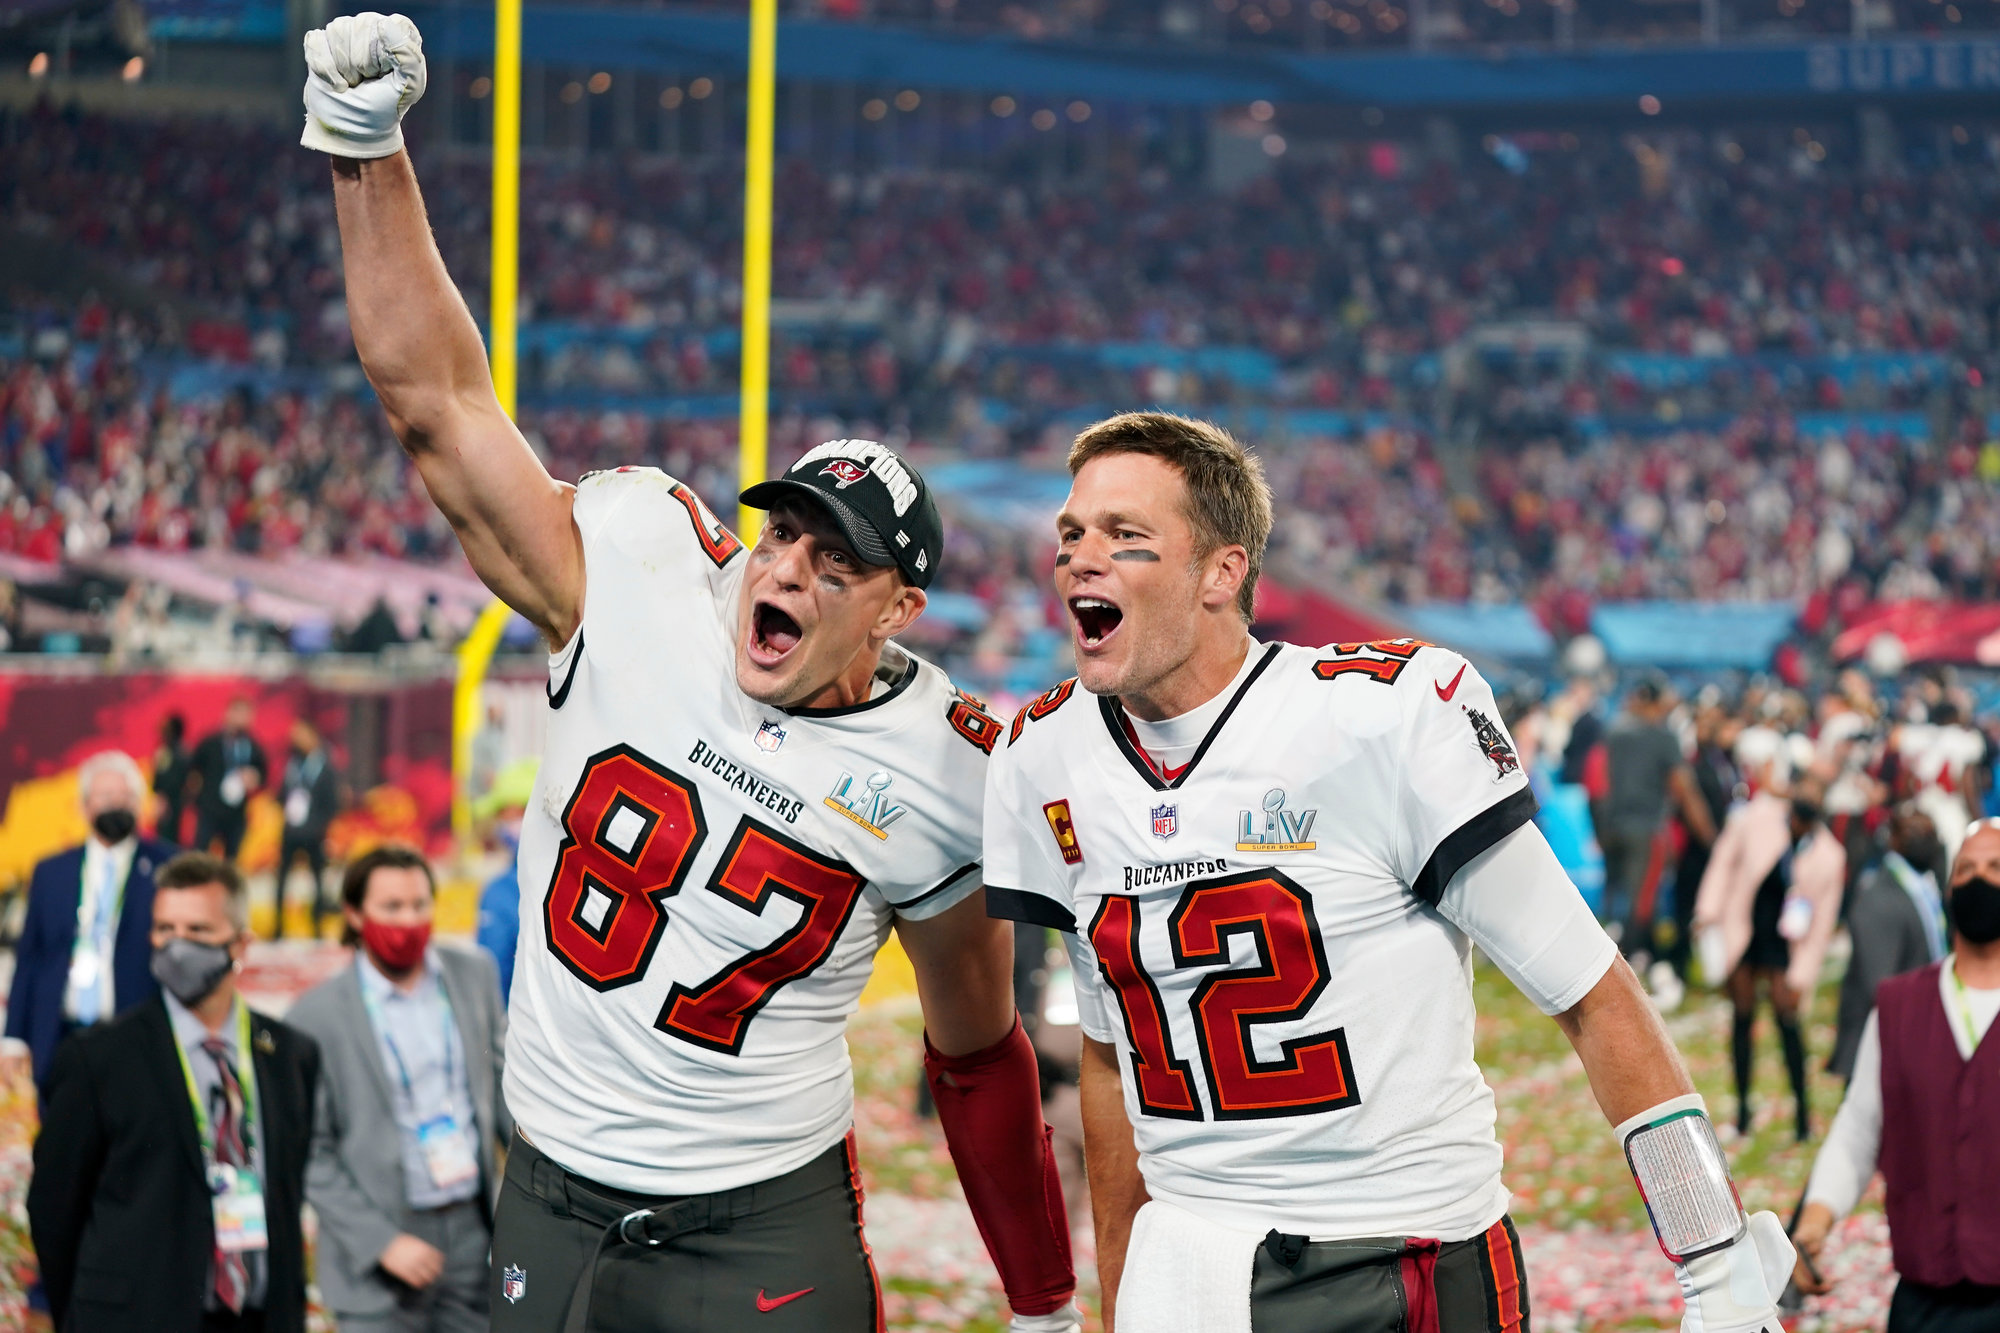 Tampa Bay Buccaneers tight end Rob Gronkowski (87), left, and Tampa Bay Buccaneers quarterback Tom Brady (12) celebrate together after the NFL Super Bowl 55 football game against the Kansas City Chiefs, Sunday, Feb. 7, 2021, in Tampa, Fla. The Tampa Bay Buccaneers defeated the Kansas City Chiefs 31-9.